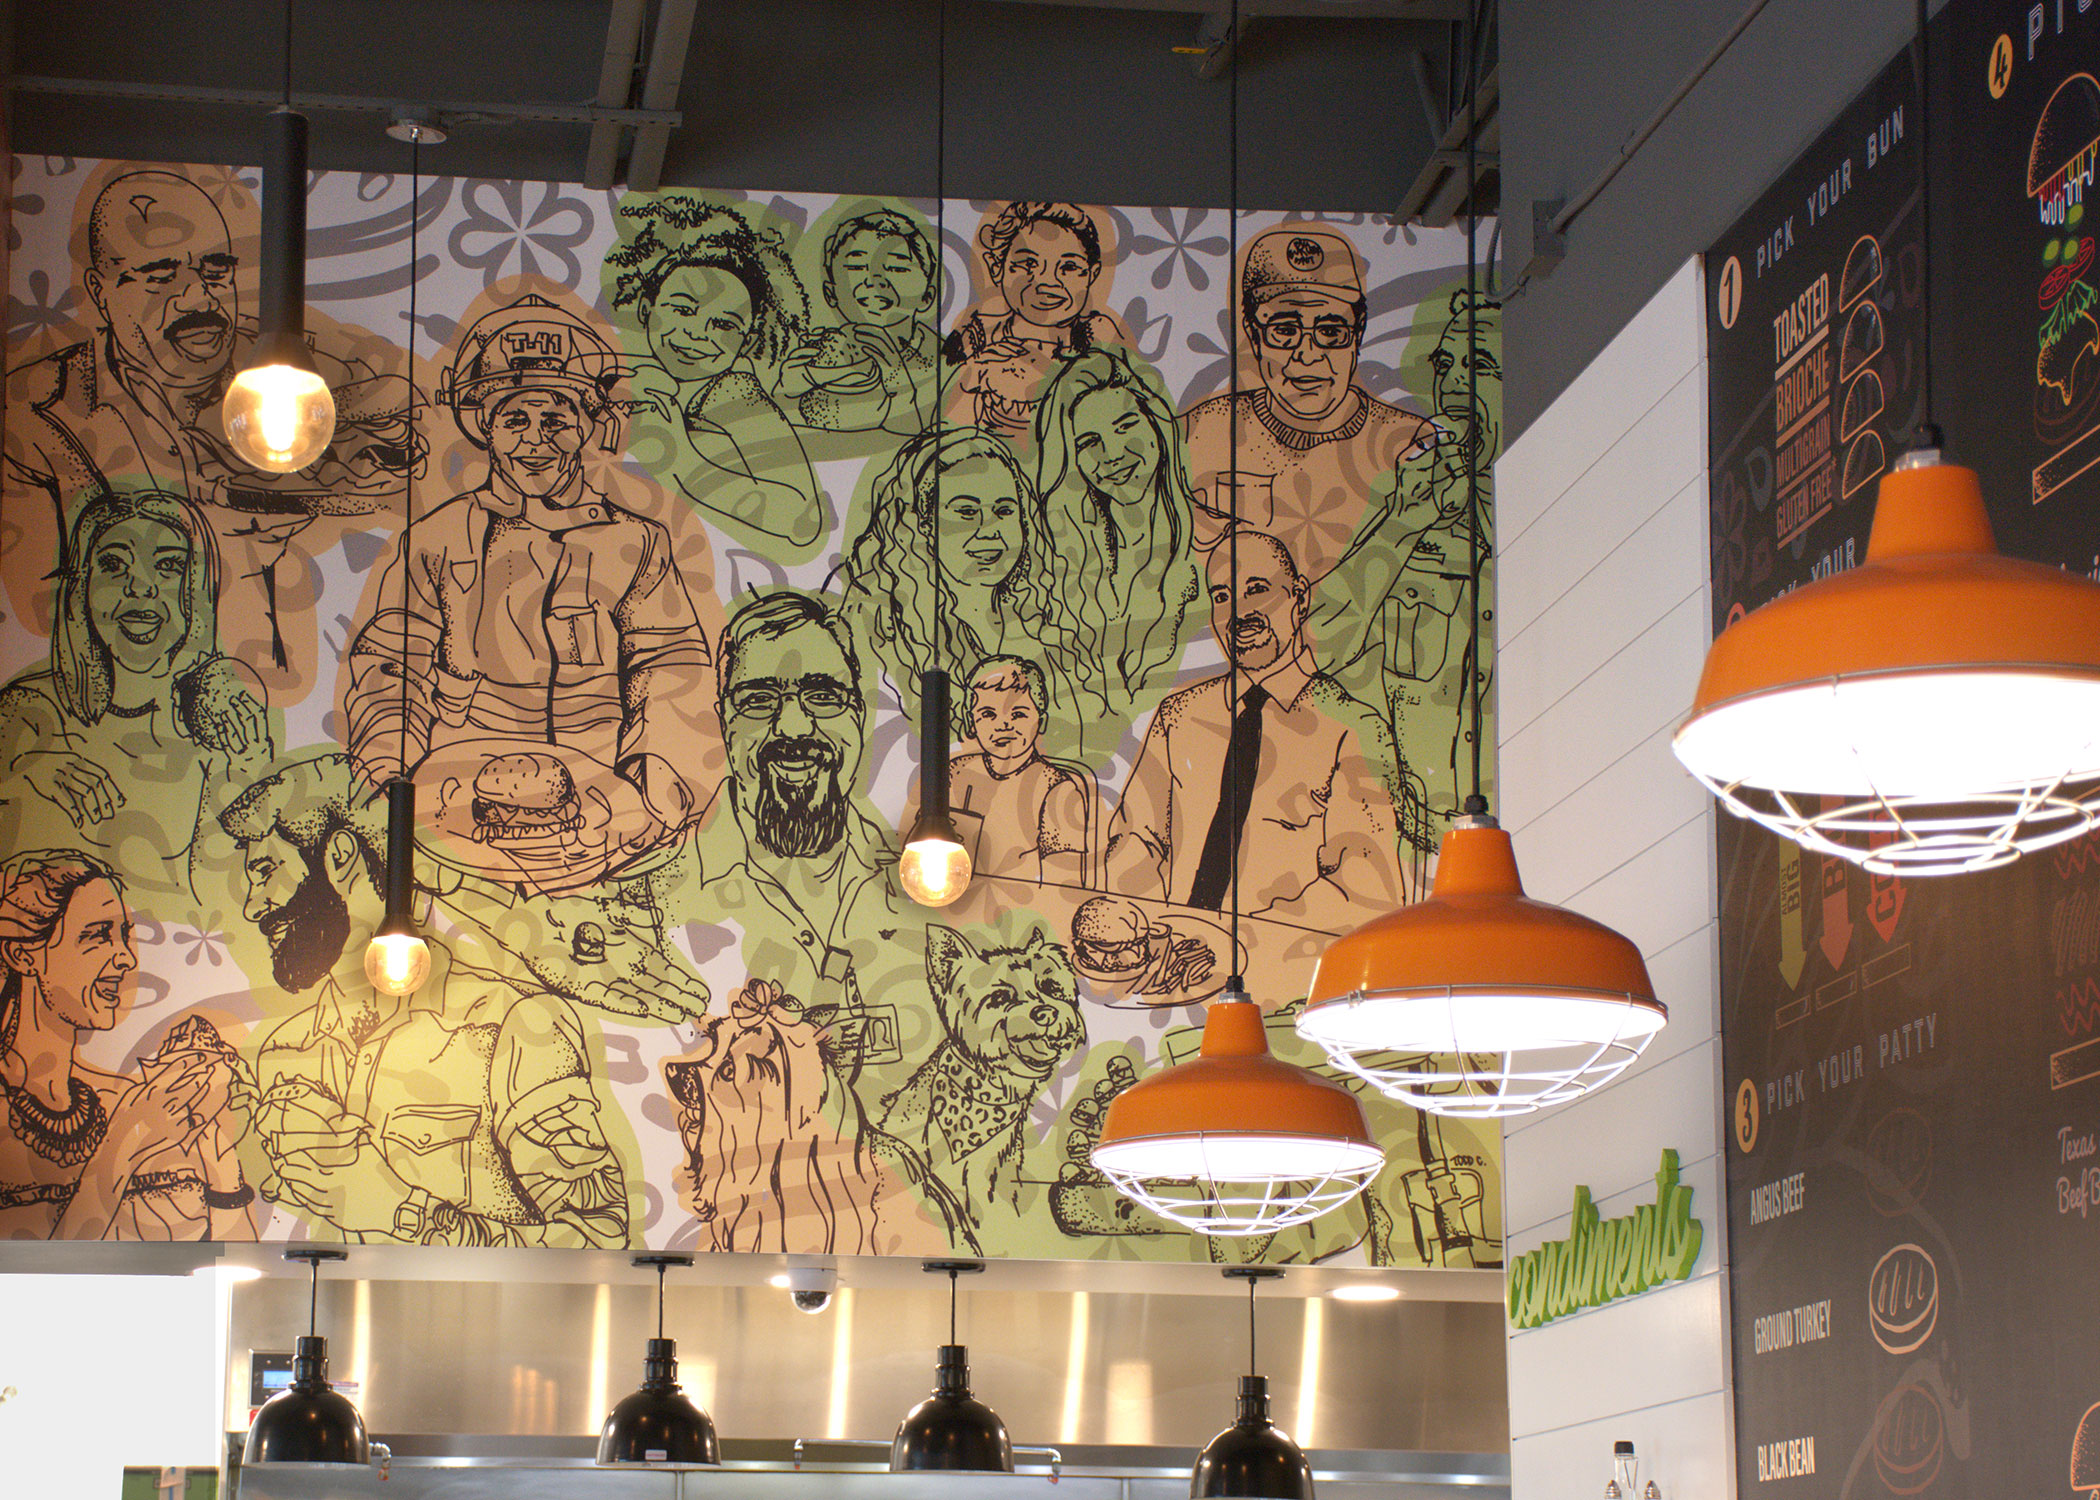 Mural-design-in-restaurant